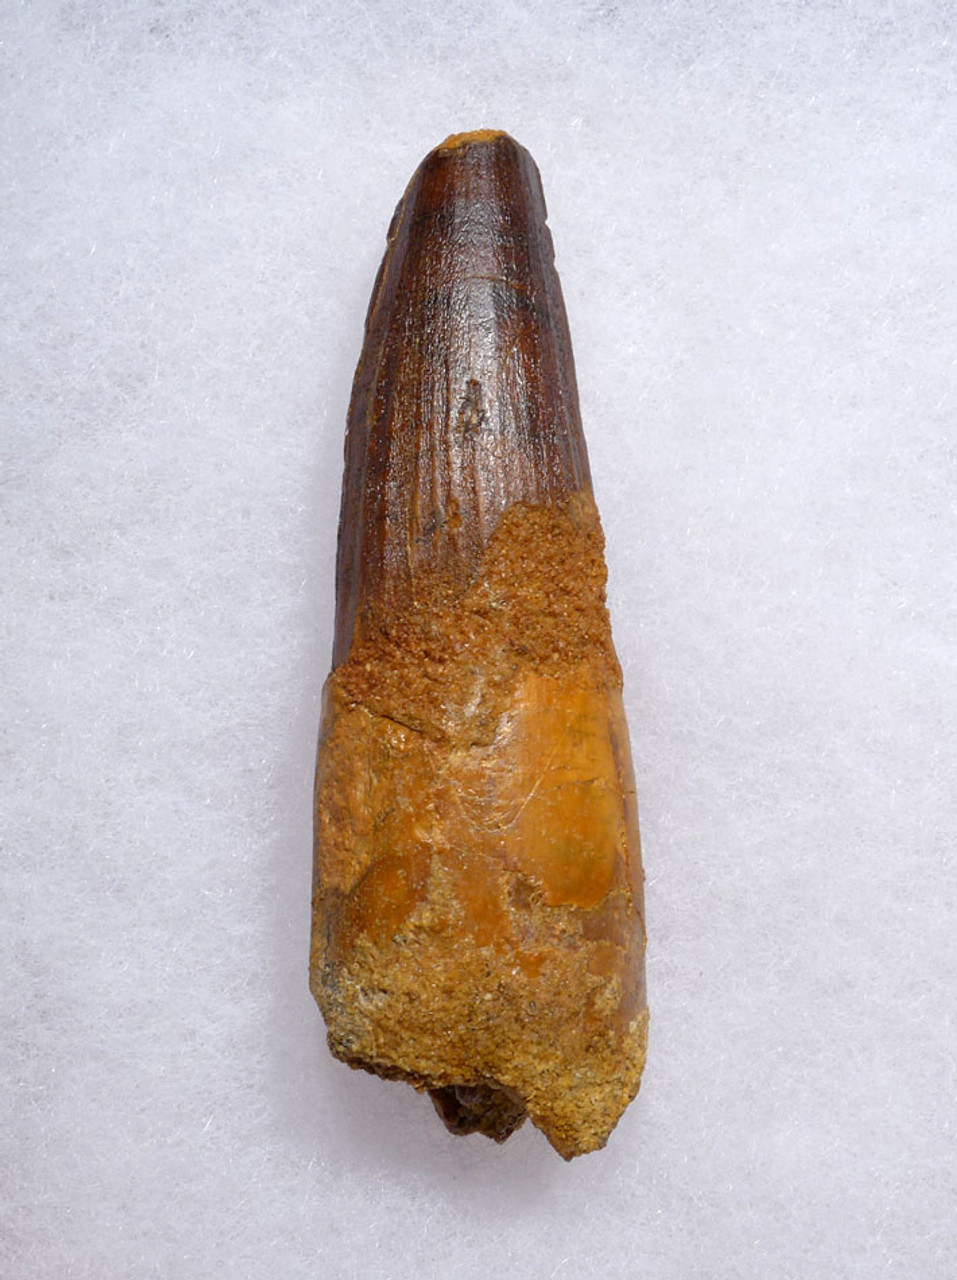 IMPRESSIVE LARGE 3.25 INCH SPINOSAURUS DINOSAUR FOSSIL TOOTH *DT5-456